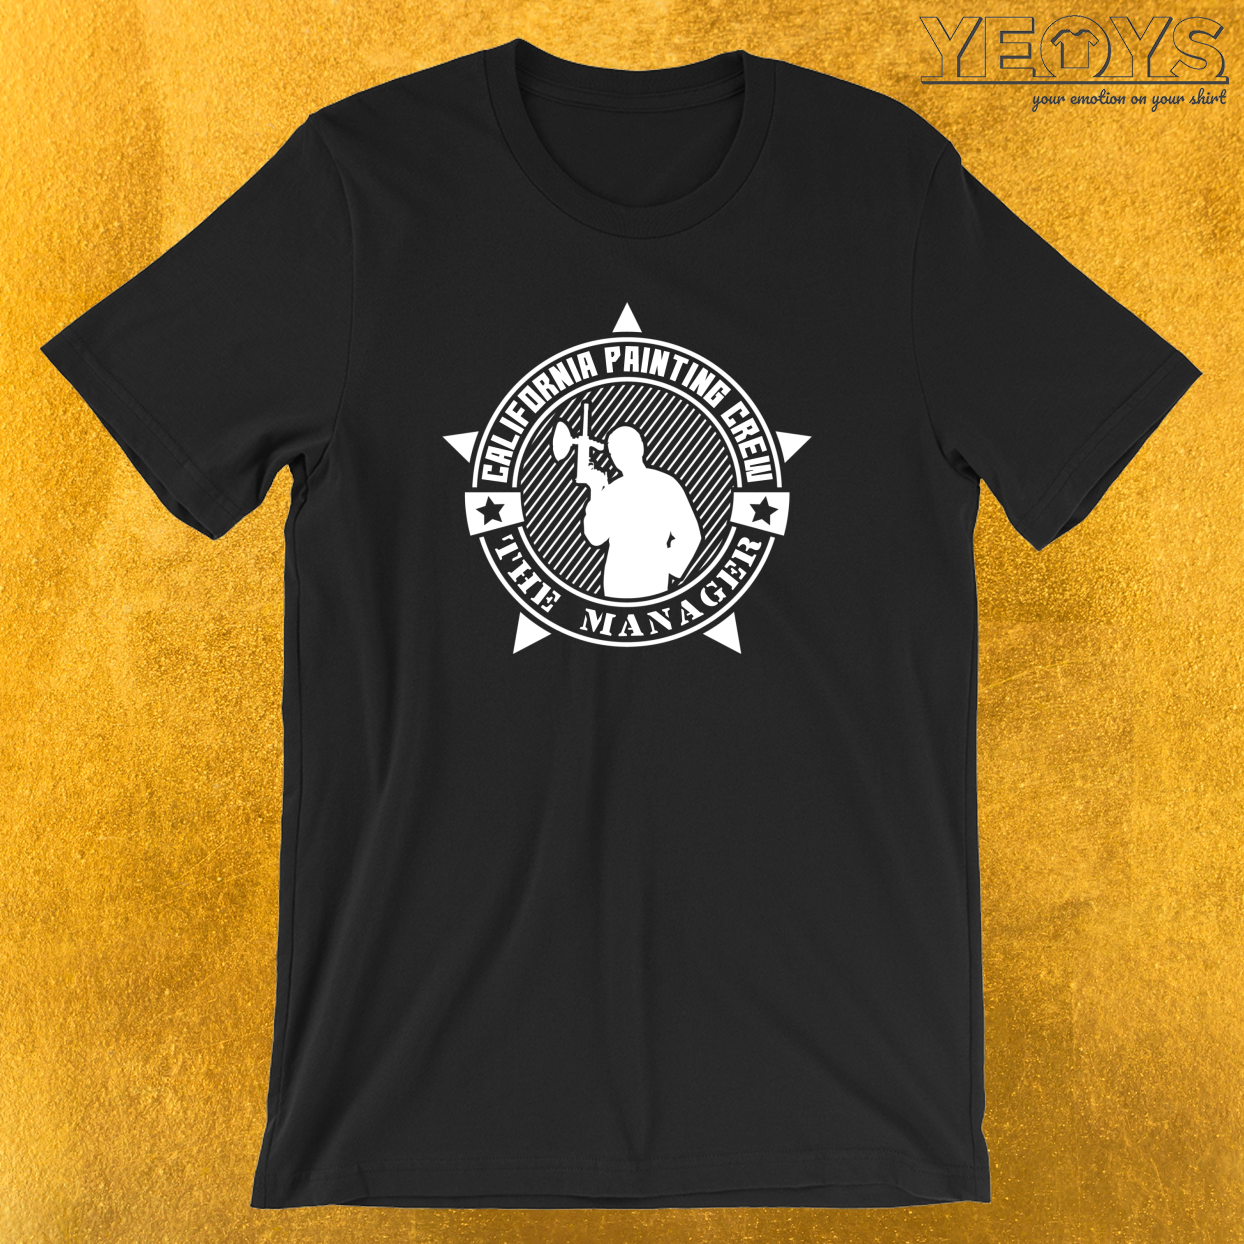 California Painting Crew The Manager T-Shirt